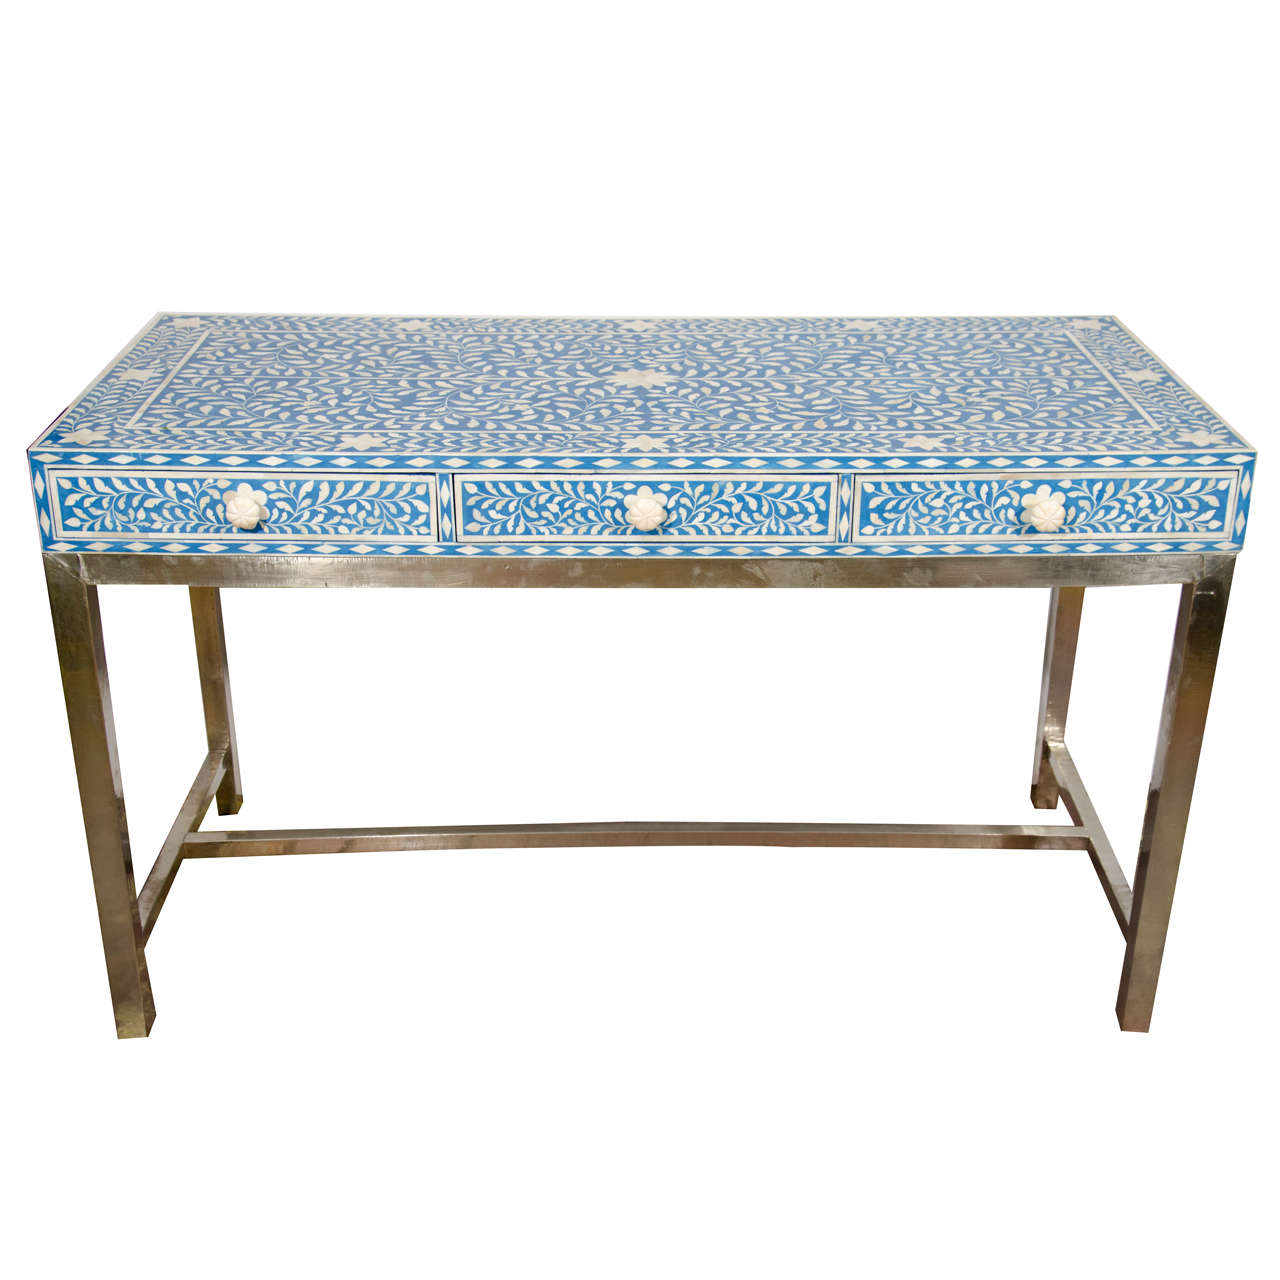 steel chair buyers in india blue pattern accent indian bone inlay and white writing desk with